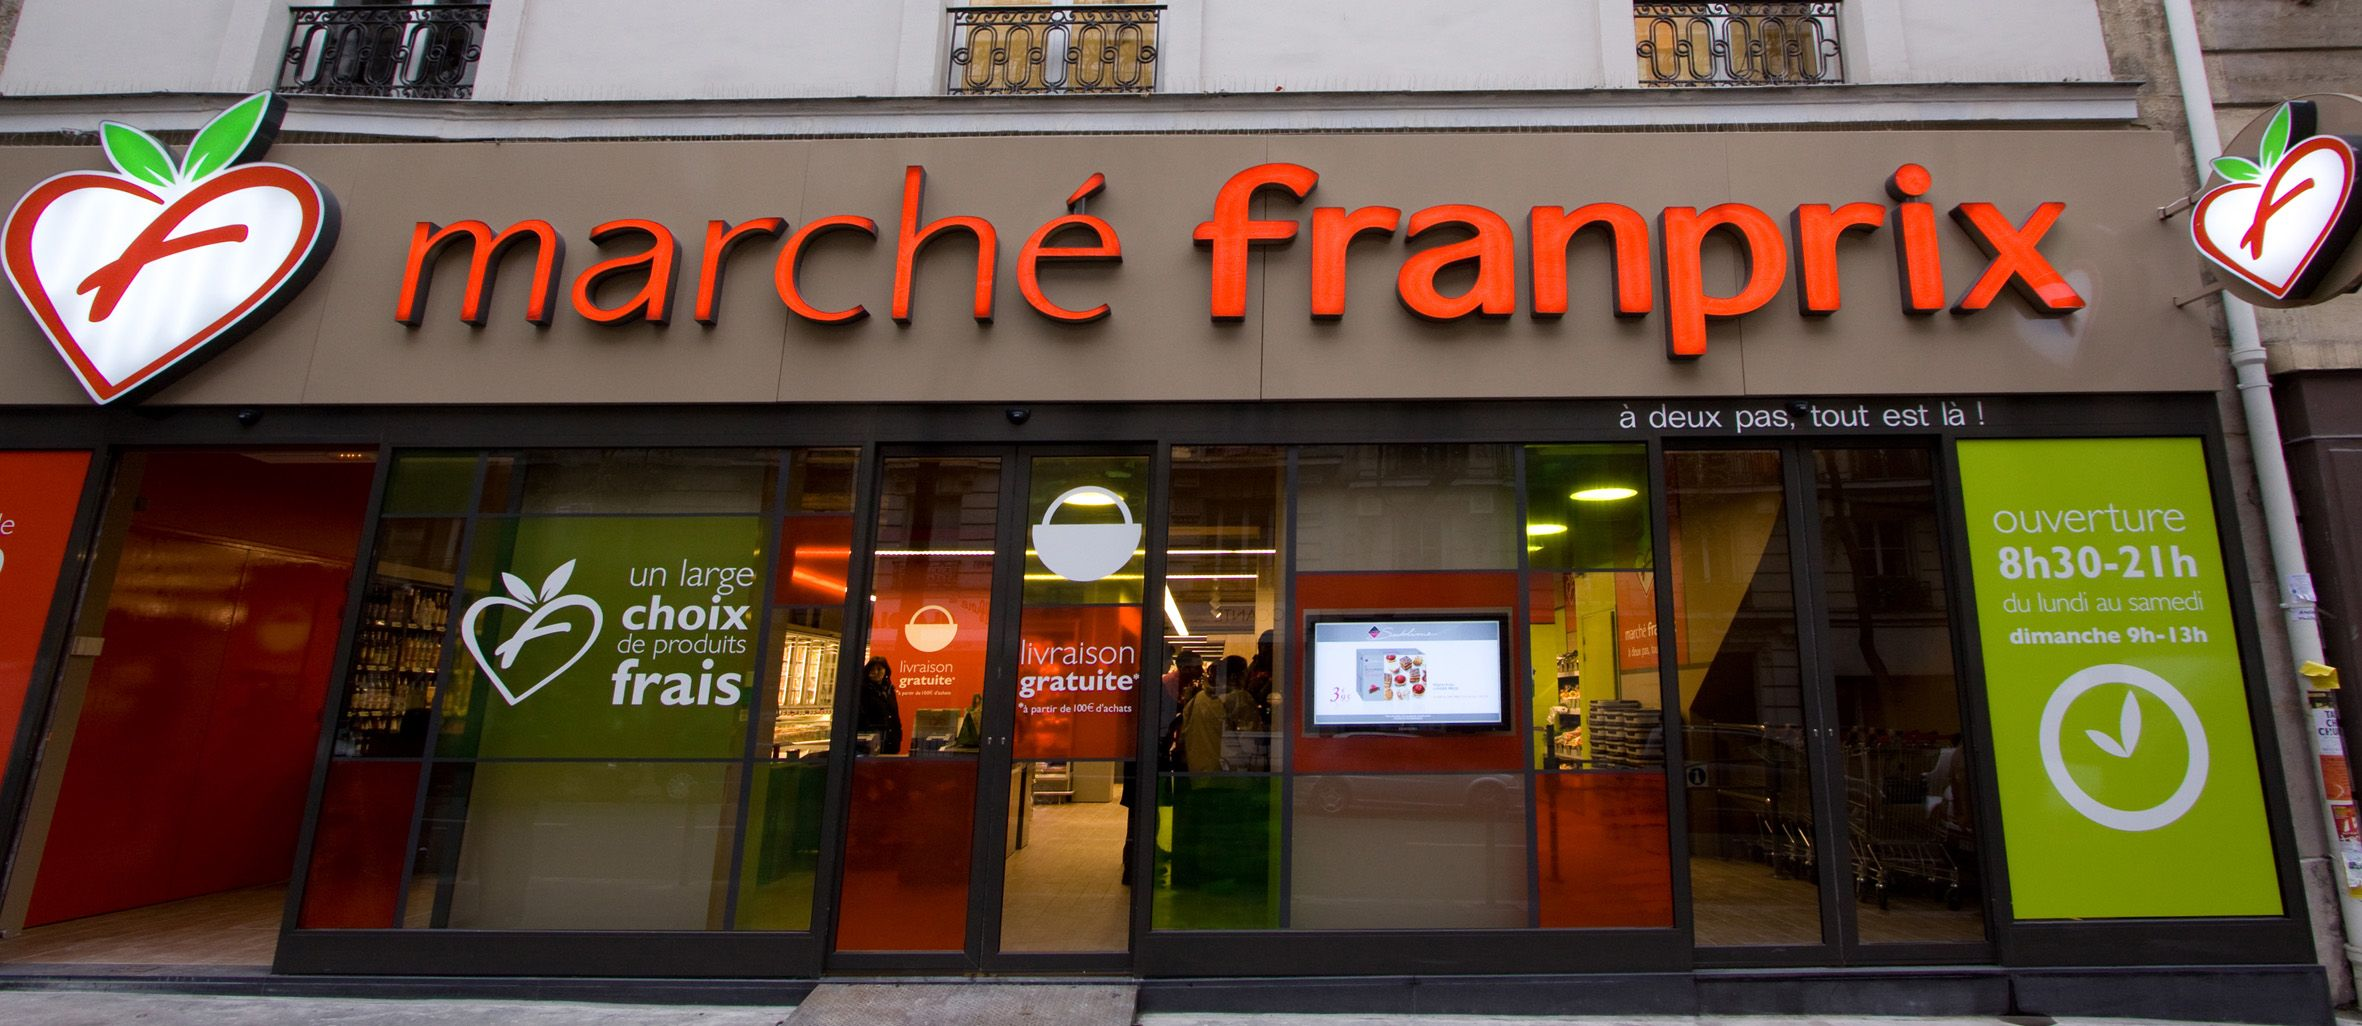 Grocery stores in paris france insidrs guide to